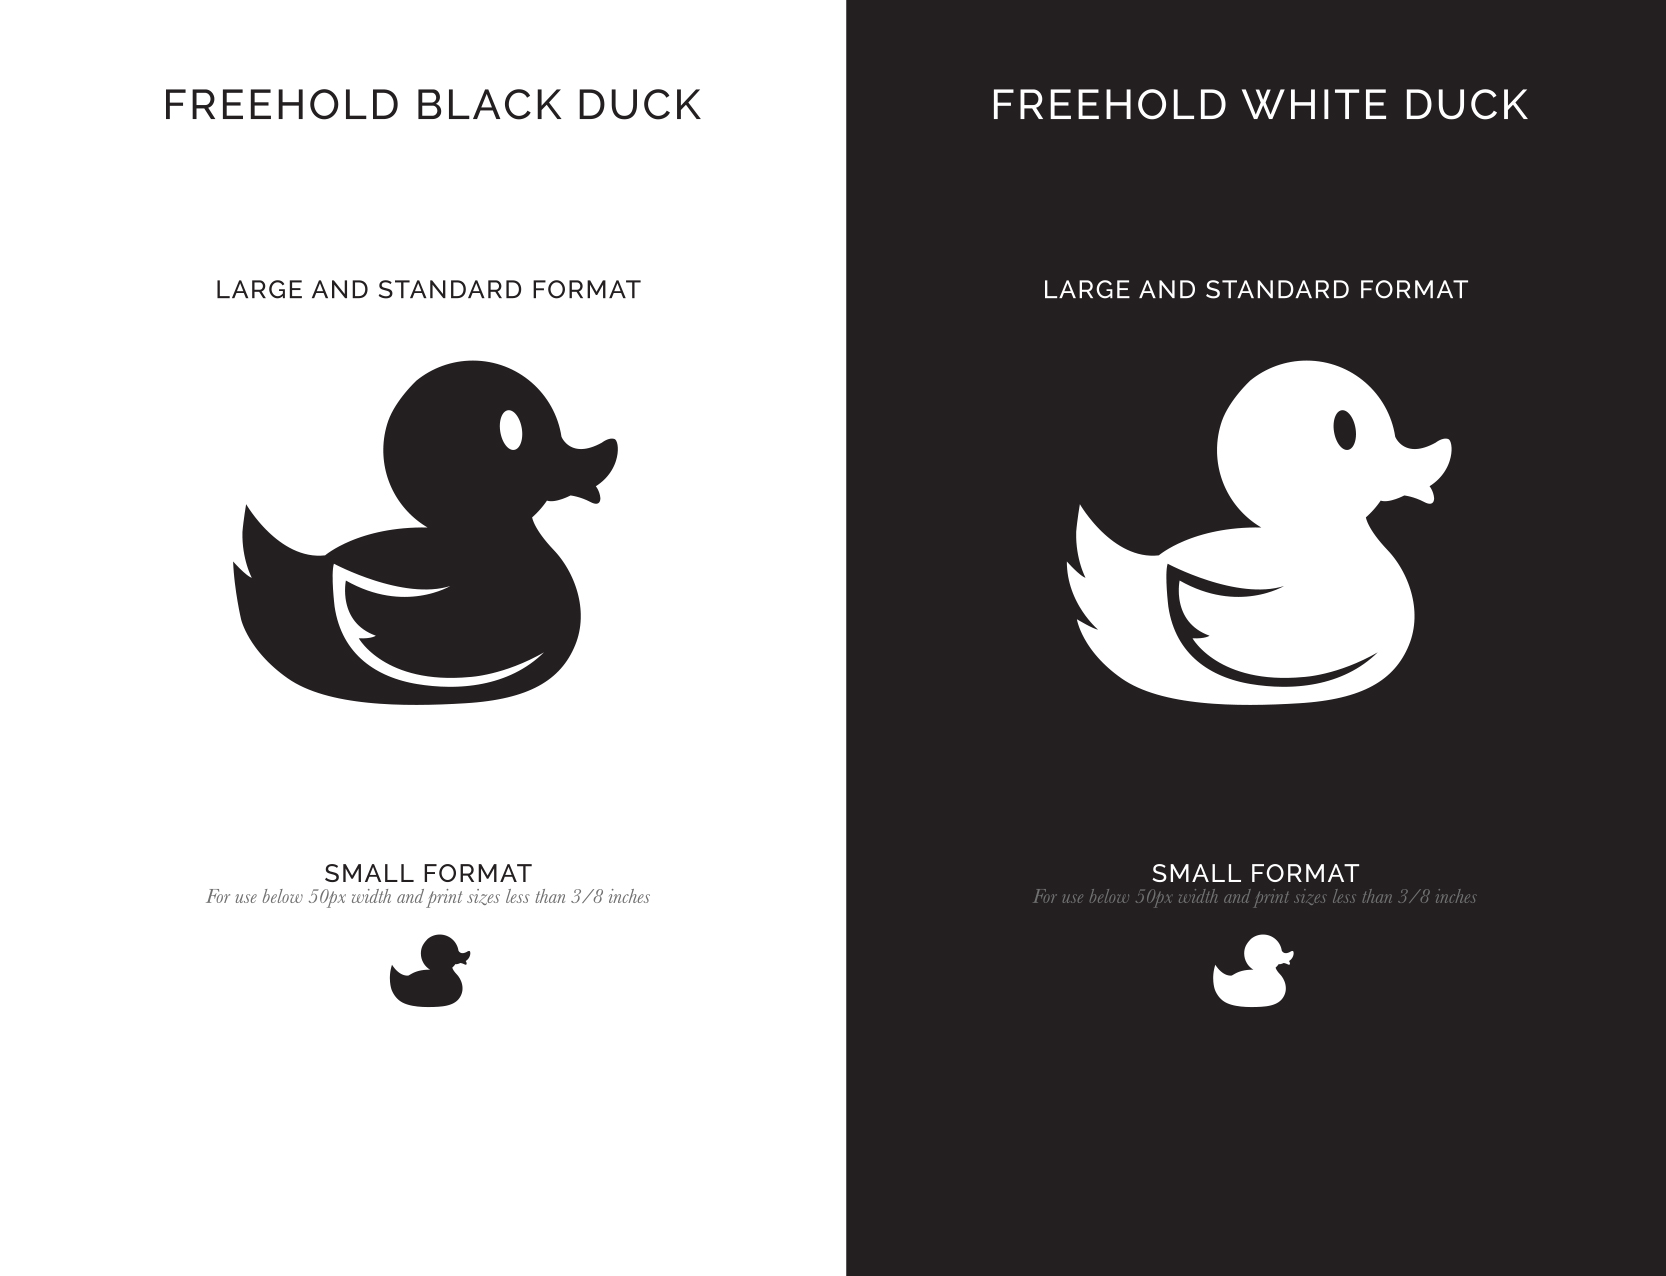 Branding of original Rubber Ducky design for the Freehold logo and promotional materials